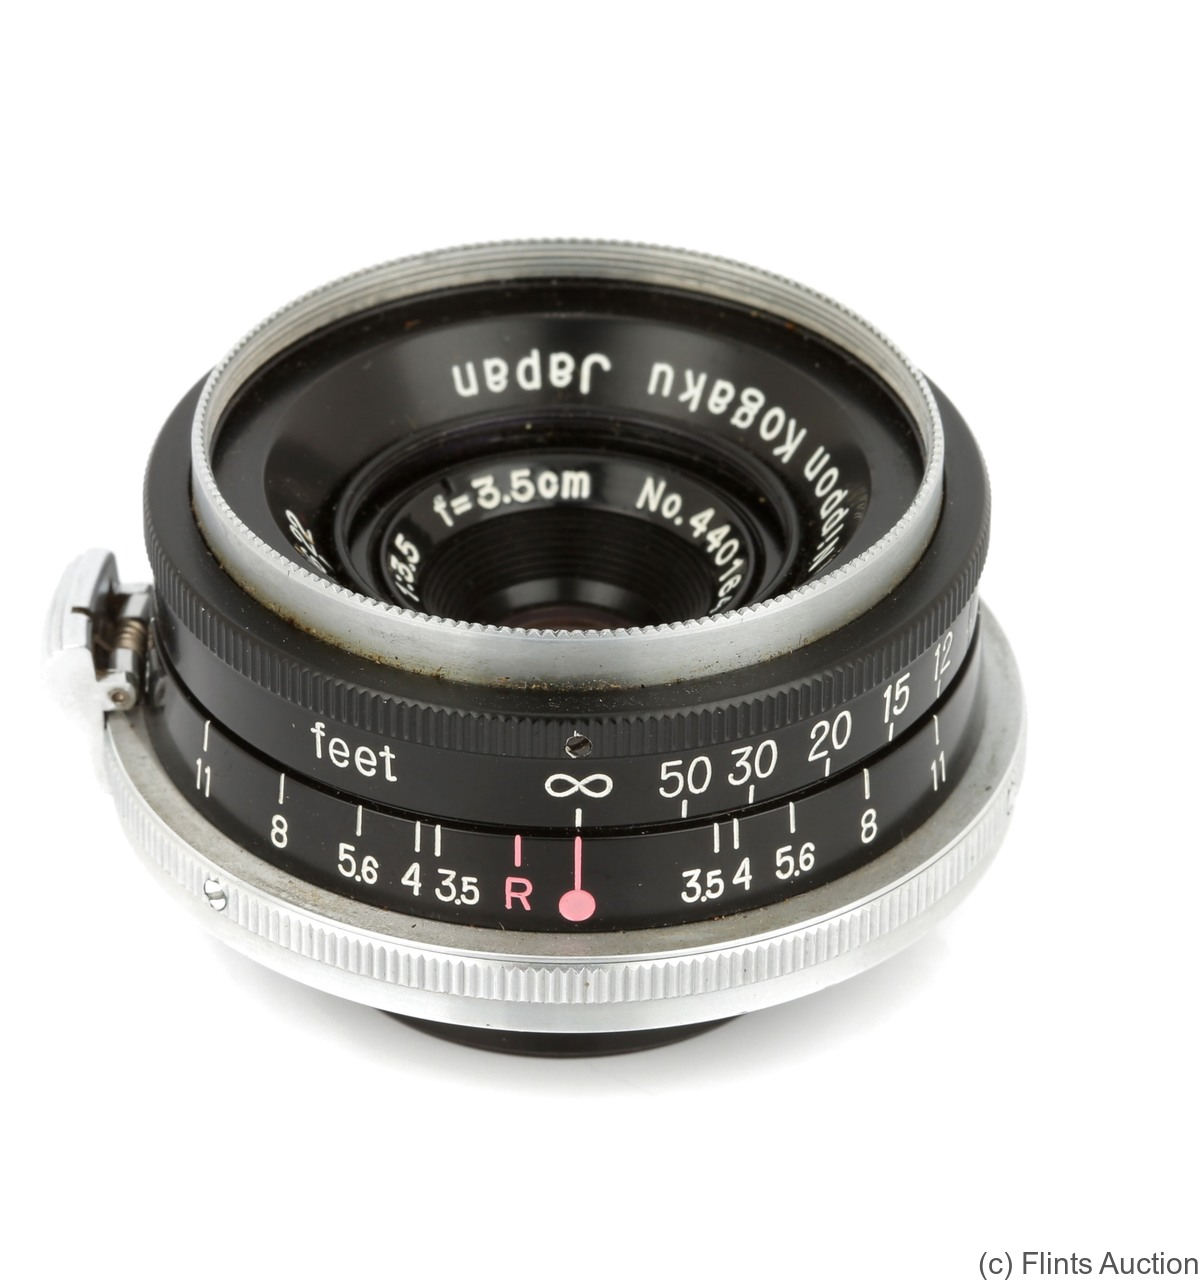 Nikon: 35mm (3.5cm) f3.5 W-Nikkor C (BM, black) camera